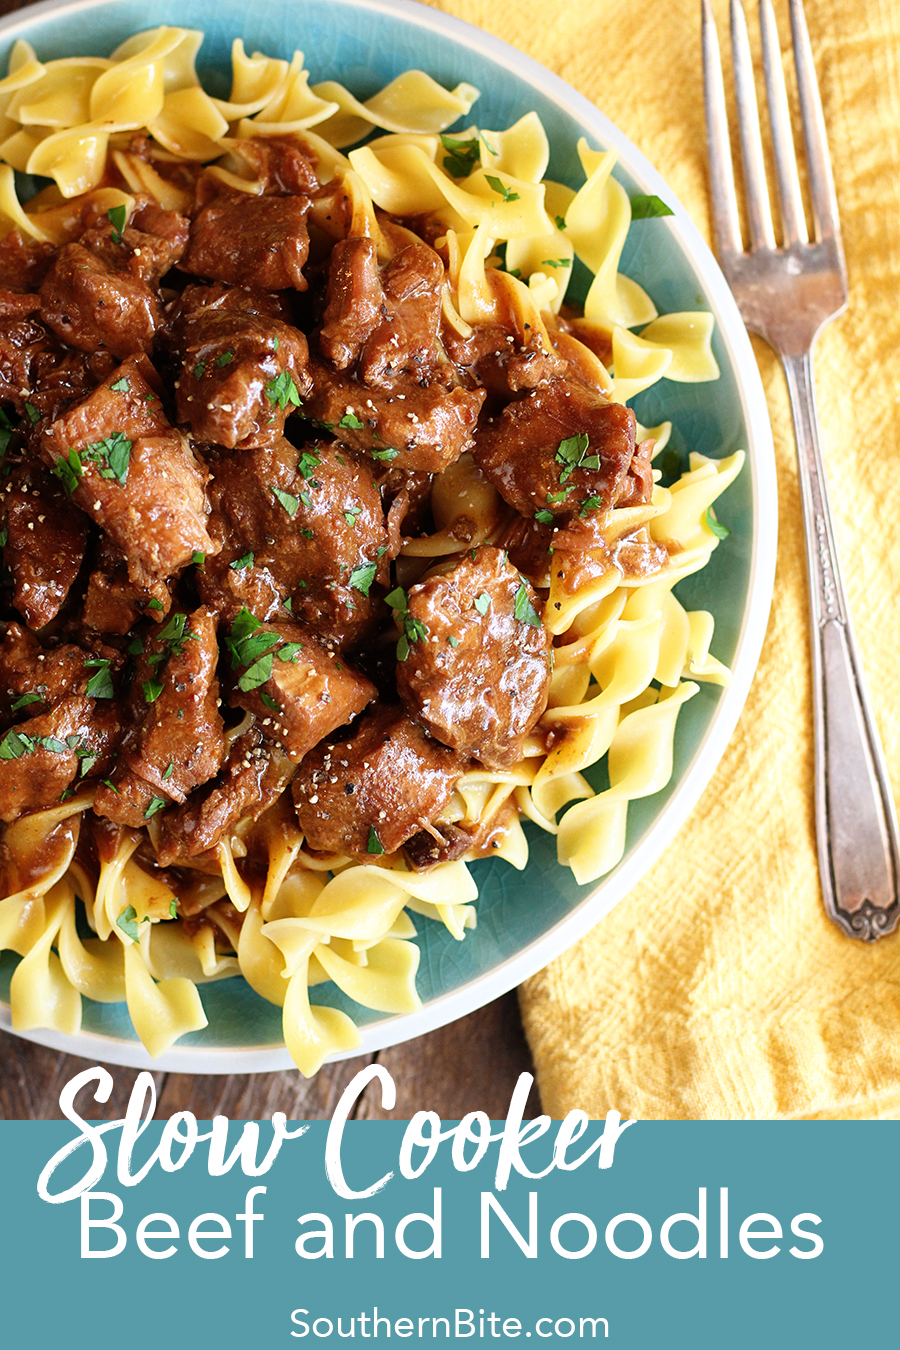 This easy recipe for Slow Cooker Beef and Noodles is your new go-to for busy weeknight comfort food!